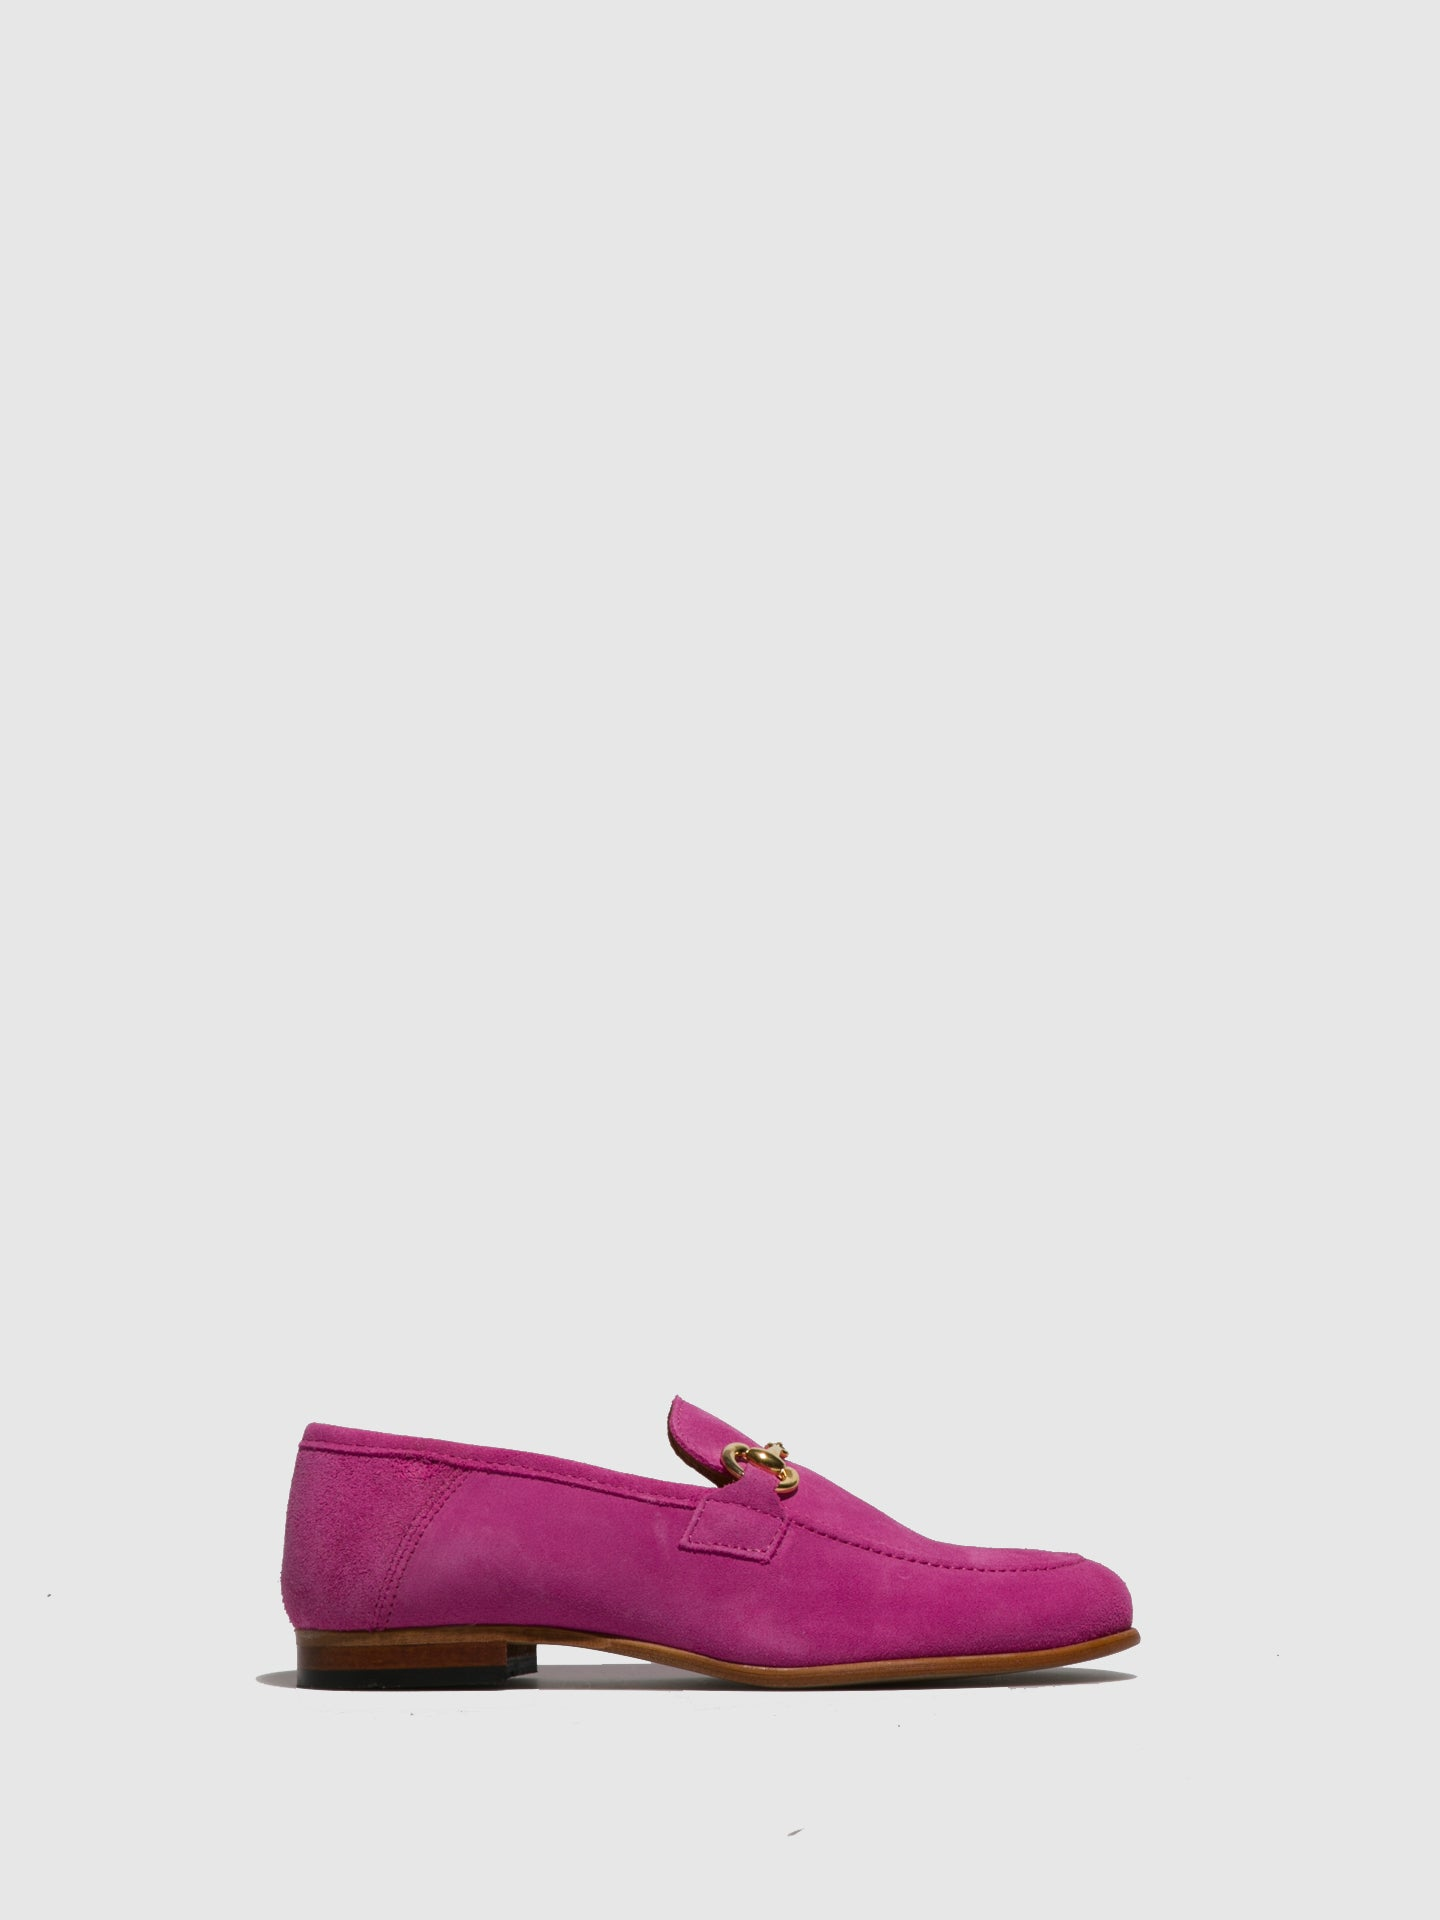 Foreva Pink Leather Mocassins Shoes